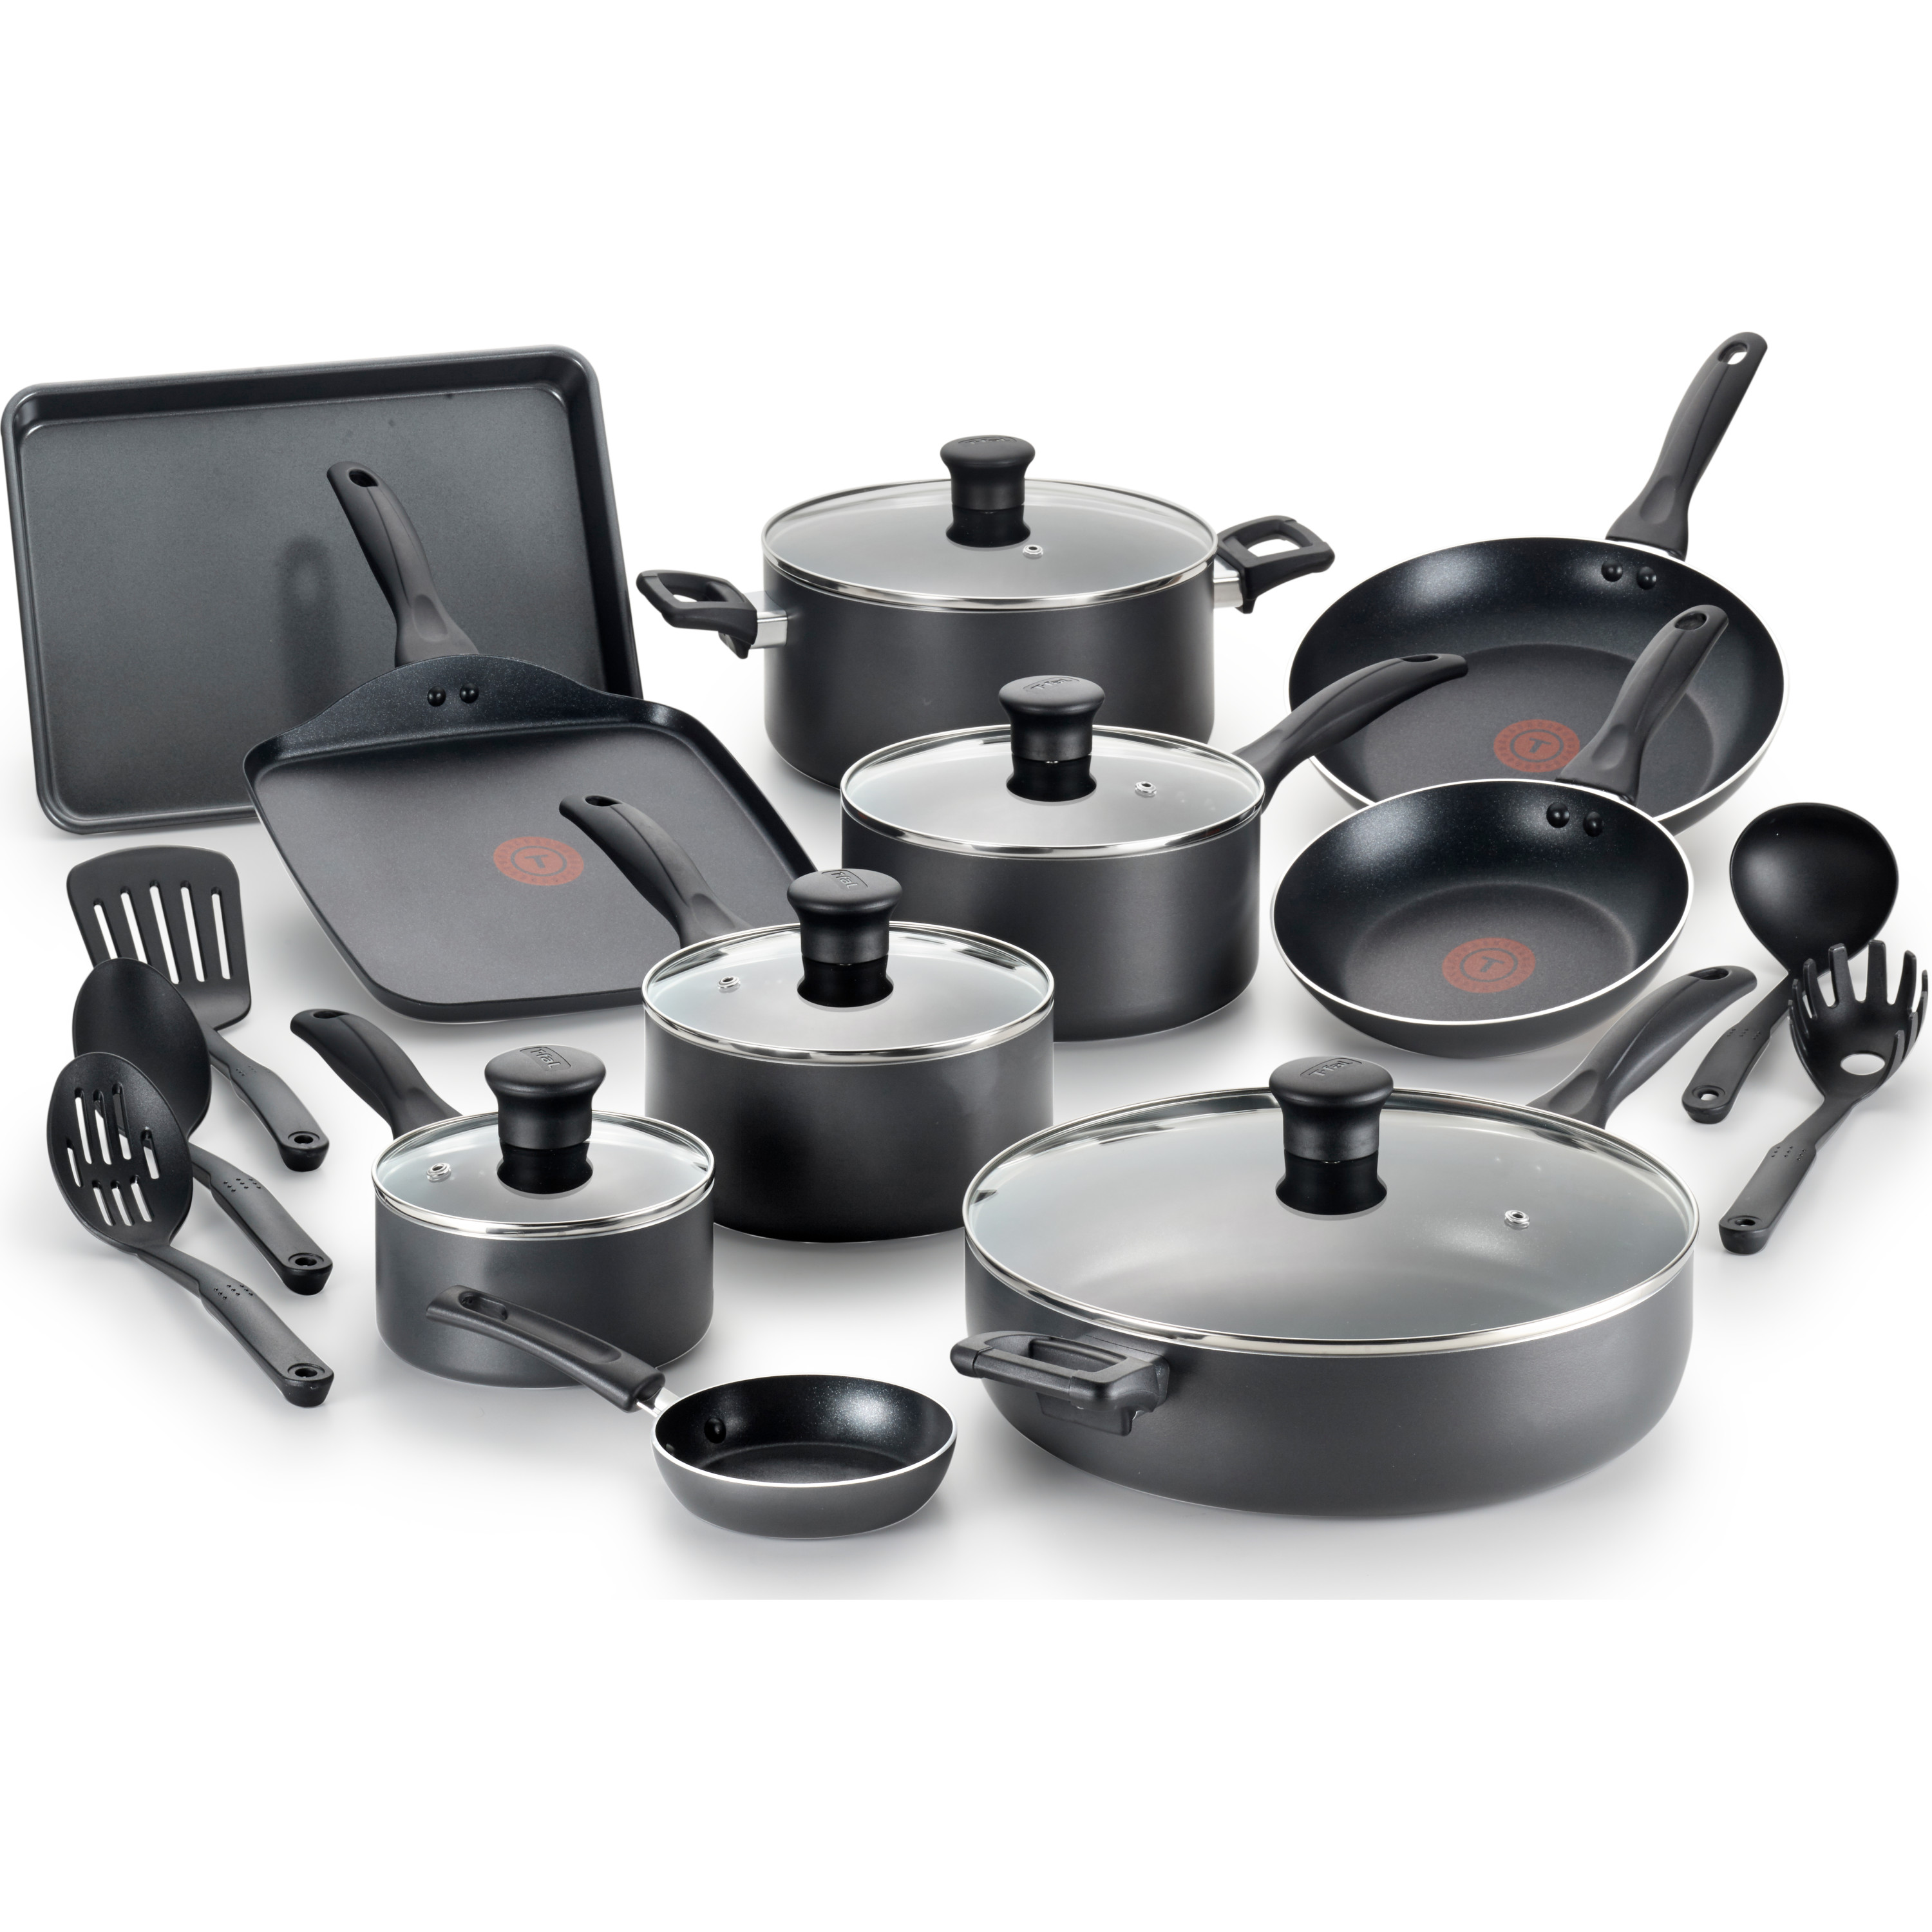 T-fal Easy Care Thermo-Spot Non-Stick Dishwasher Safe Grey Cookware Set, 20 Piece